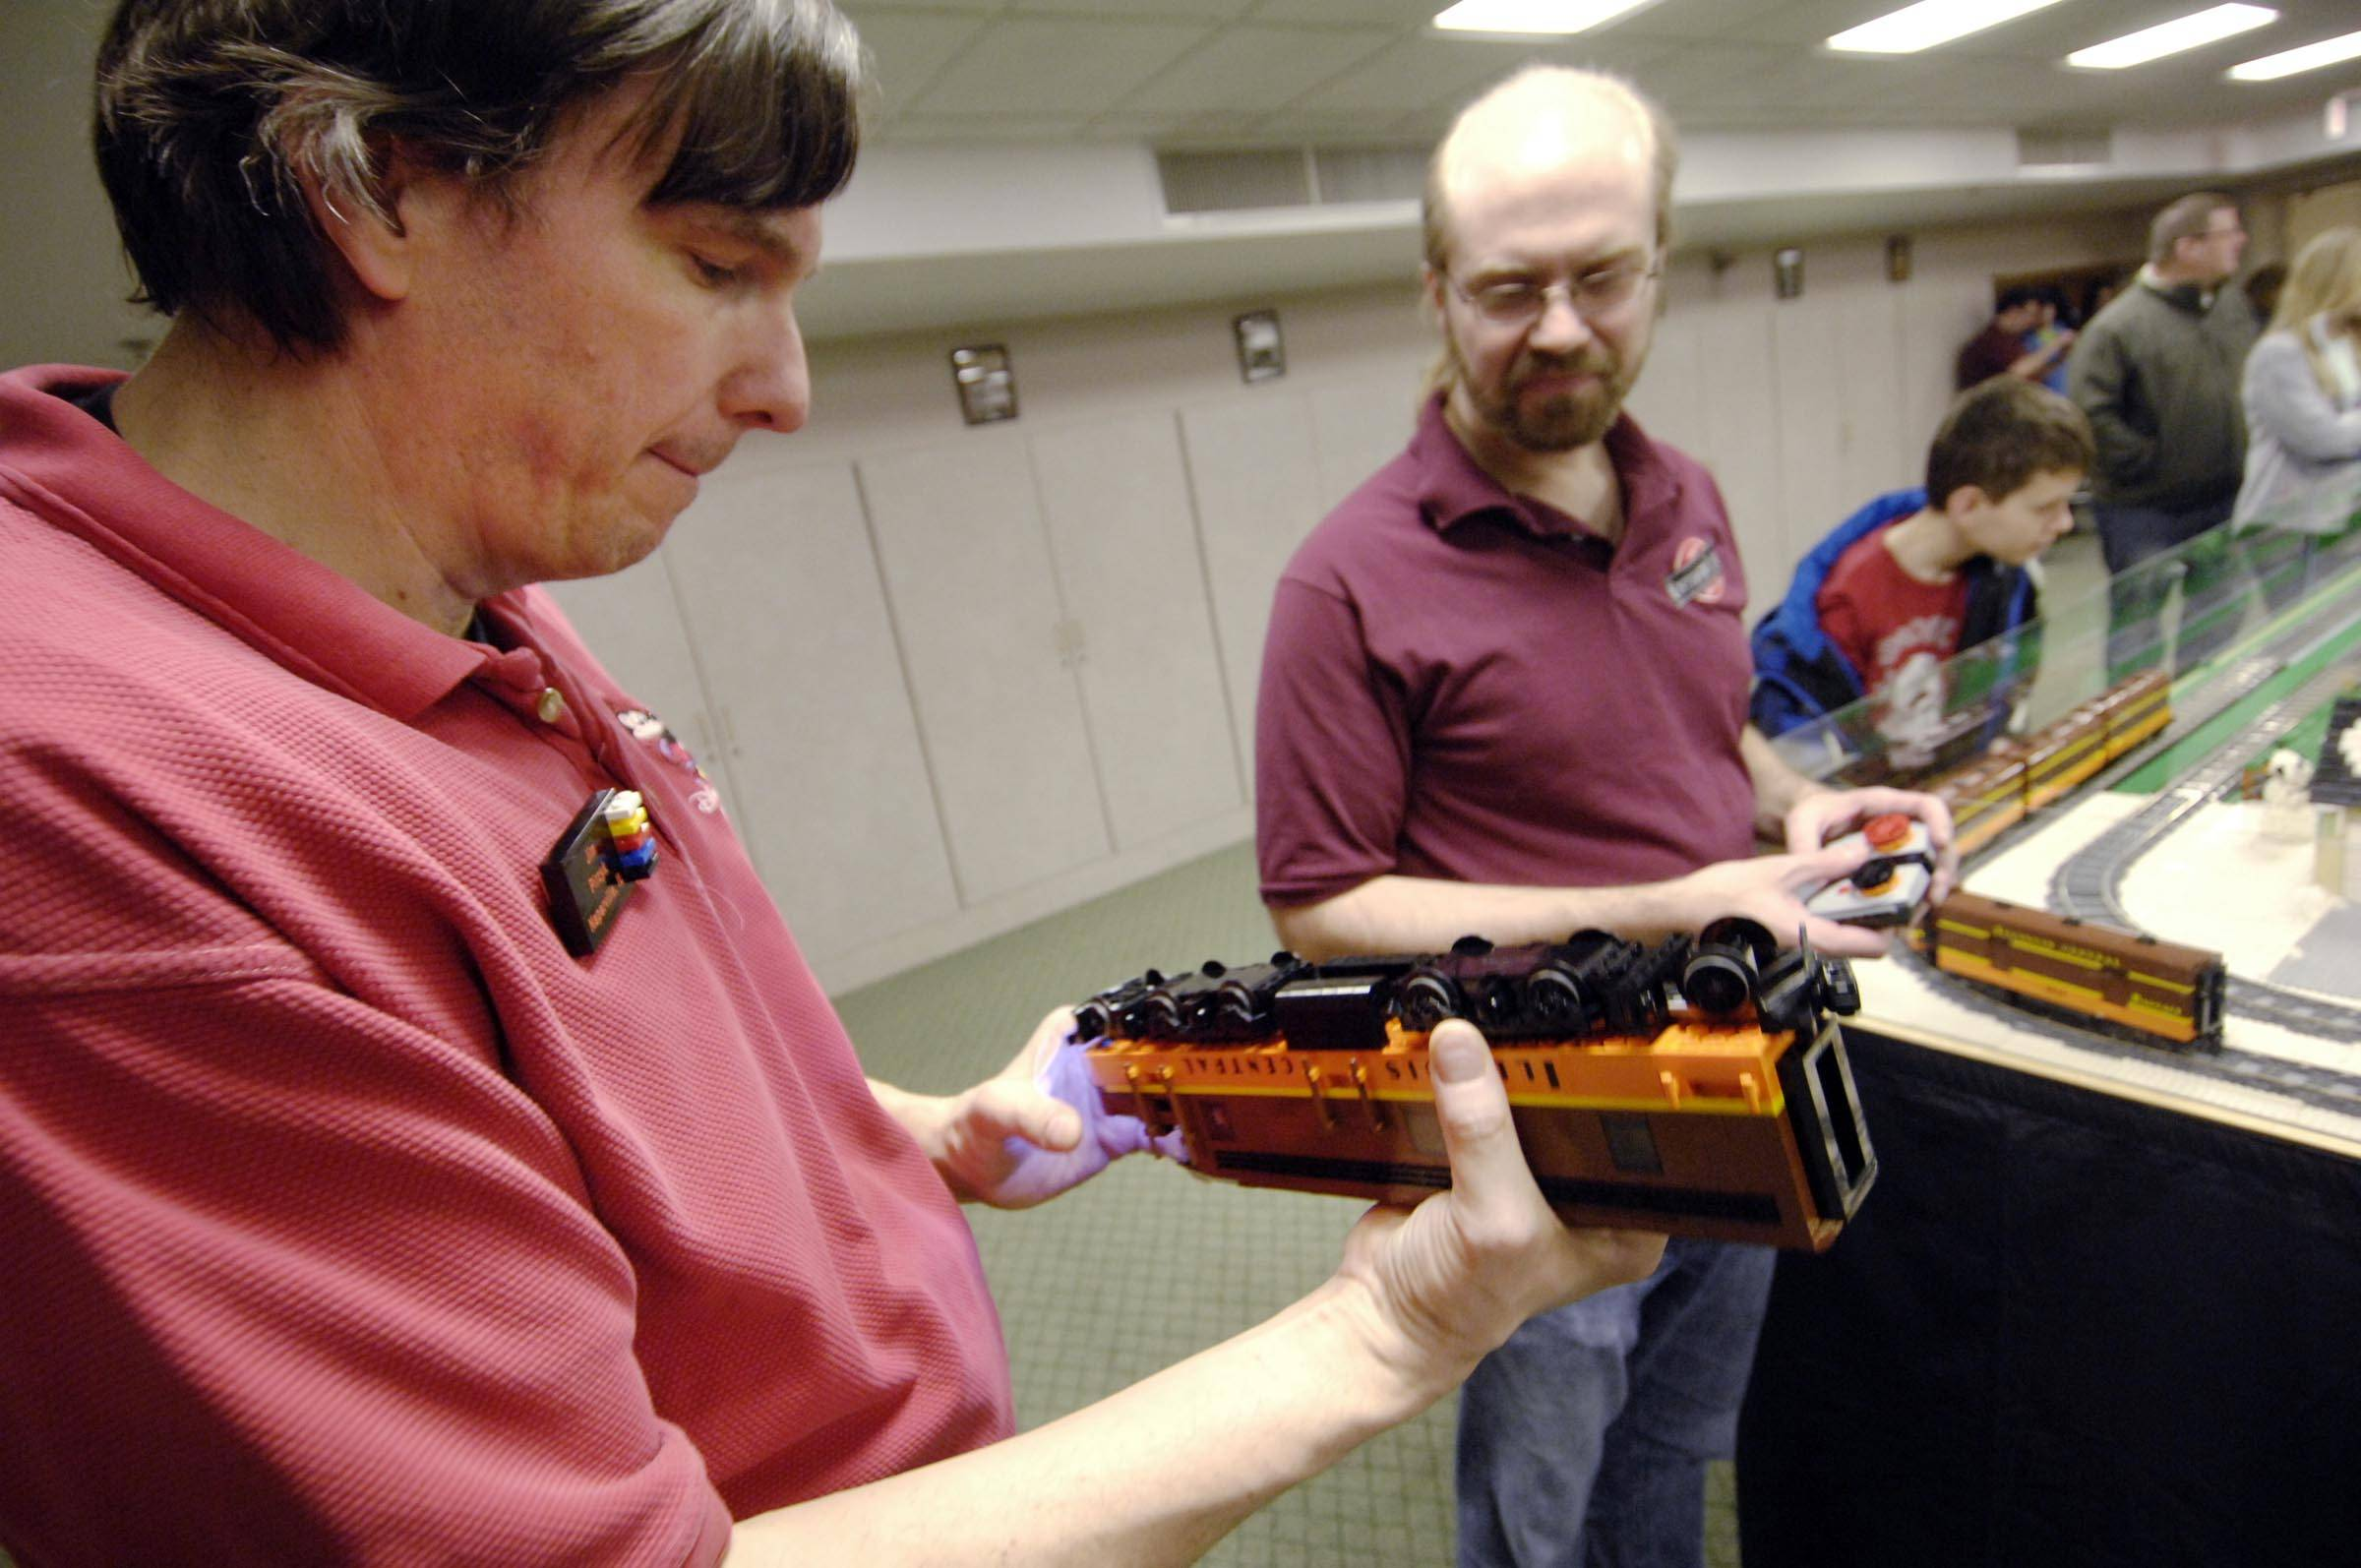 Club member Jim Pirzyk of Naperville holds a LEGO train while Matt De Lanoy of Woodridge holds the LEGO remote that drives the train on Sunday at an exhibit by the Northern Illinois LEGO Train Club at the Geneva Public Library.